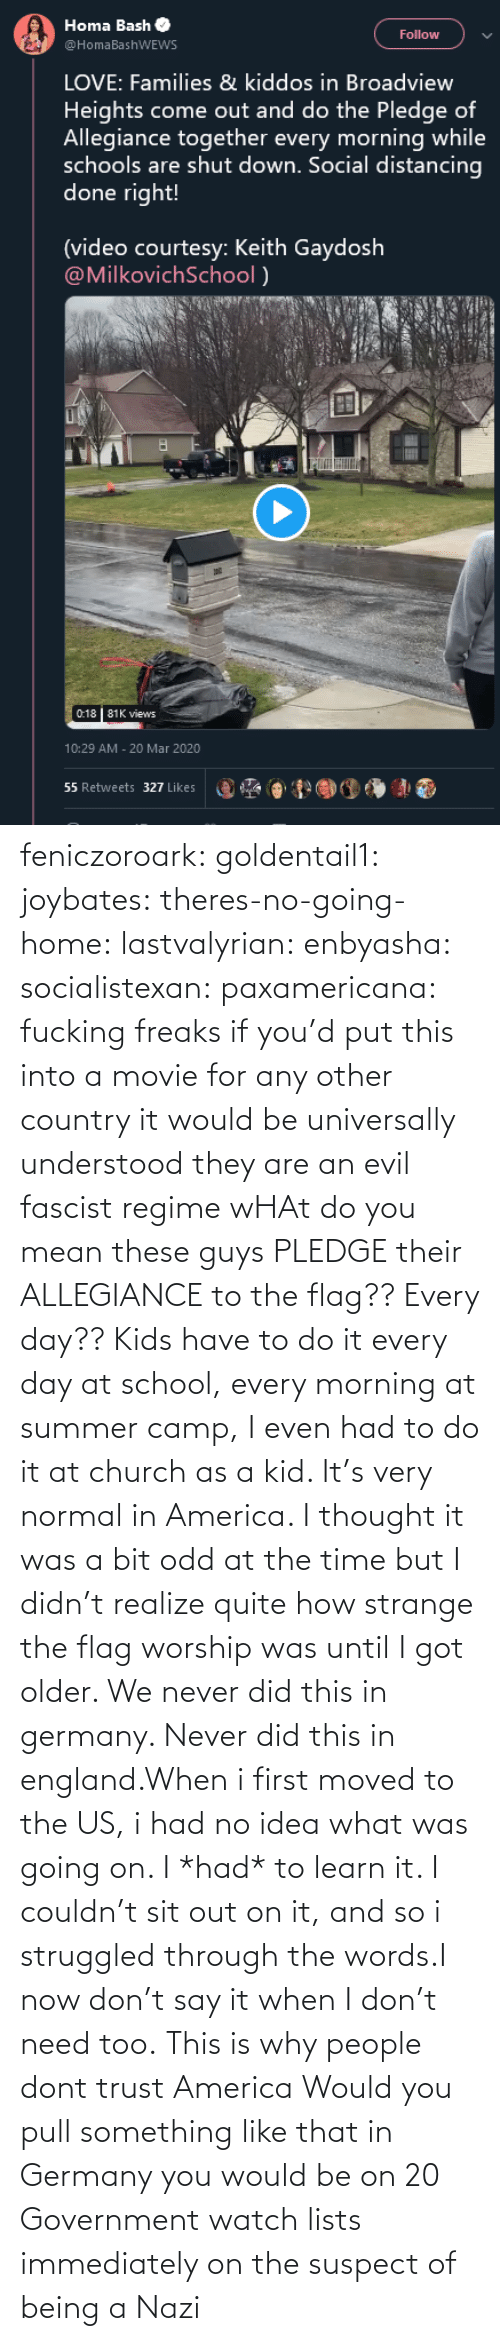 Older: feniczoroark:  goldentail1:  joybates:  theres-no-going-home:  lastvalyrian:  enbyasha:  socialistexan:  paxamericana: fucking freaks       if you'd put this into a movie for any other country it would be universally understood they are an evil fascist regime    wHAt do you mean these guys PLEDGE their ALLEGIANCE to the flag?? Every day??   Kids have to do it every day at school, every morning at summer camp, I even had to do it at church as a kid. It's very normal in America. I thought it was a bit odd at the time but I didn't realize quite how strange the flag worship was until I got older.    We never did this in germany. Never did this in england.When i first moved to the US, i had no idea what was going on. I *had* to learn it. I couldn't sit out on it, and so i struggled through the words.I now don't say it when I don't need too.   This is why people dont trust America    Would you pull something like that in Germany you would be on 20 Government watch lists immediately on the suspect of being a Nazi